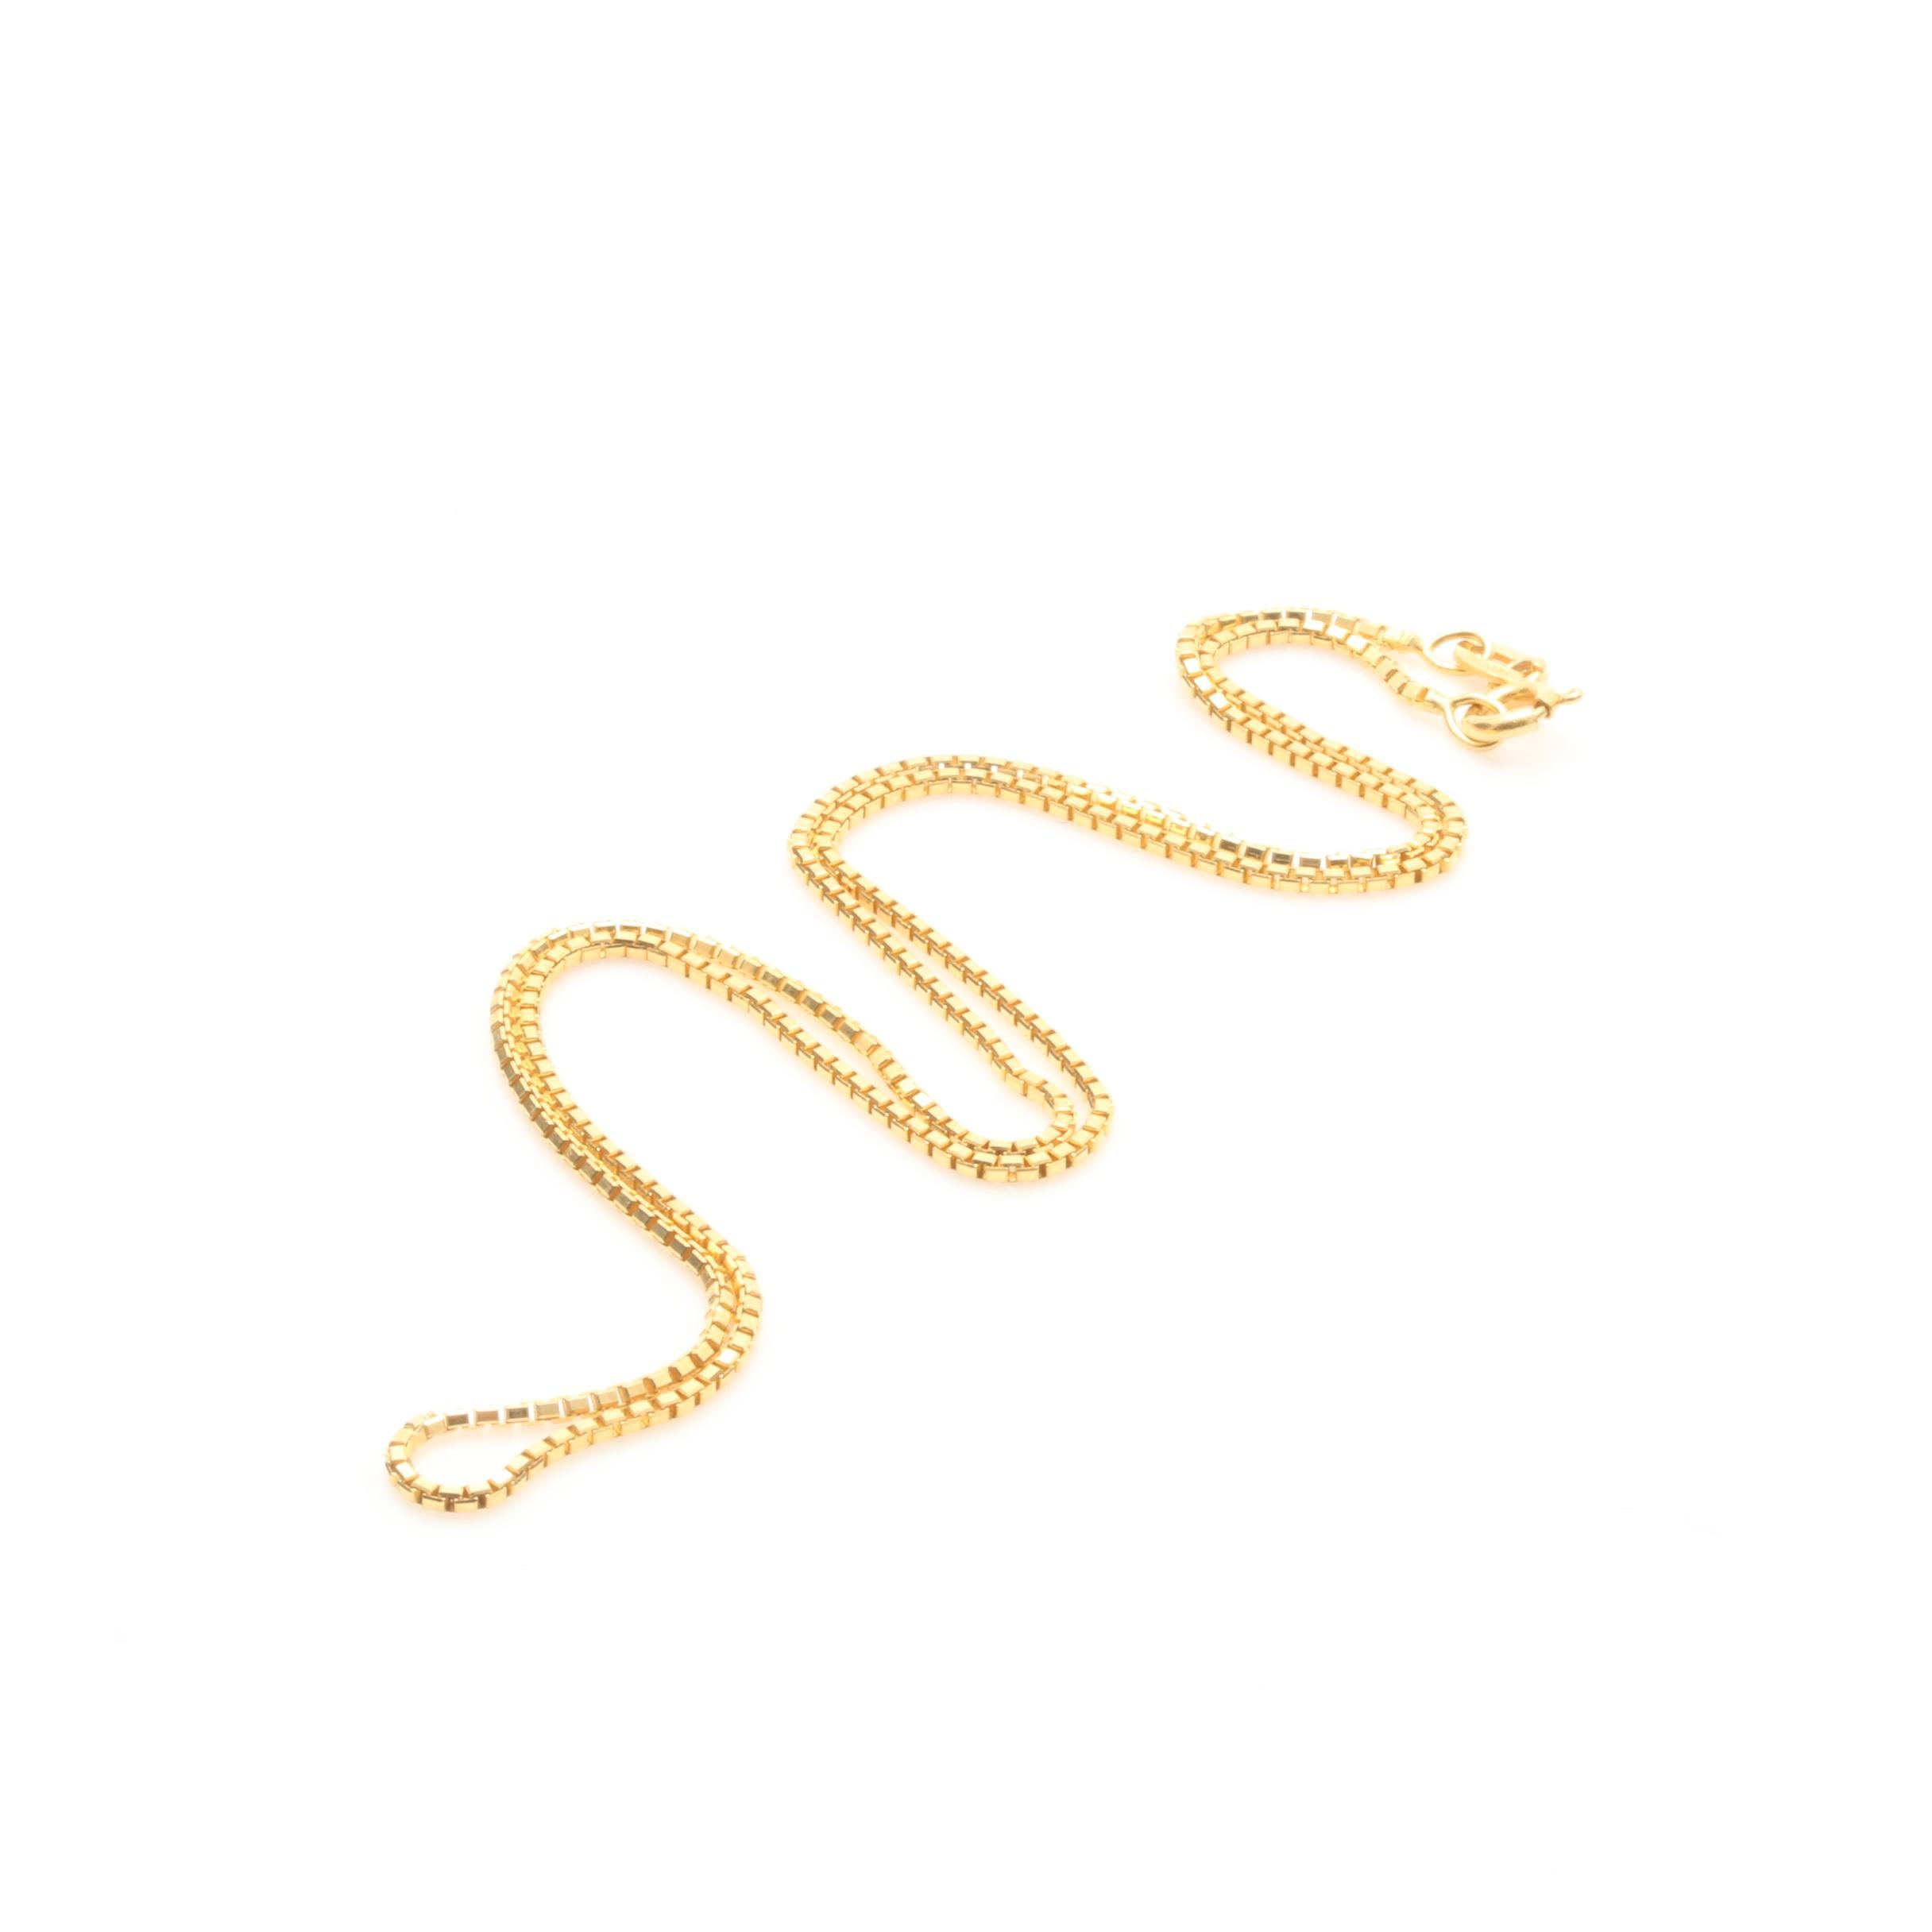 14K Yellow Gold Italian Box Link Chain Necklace